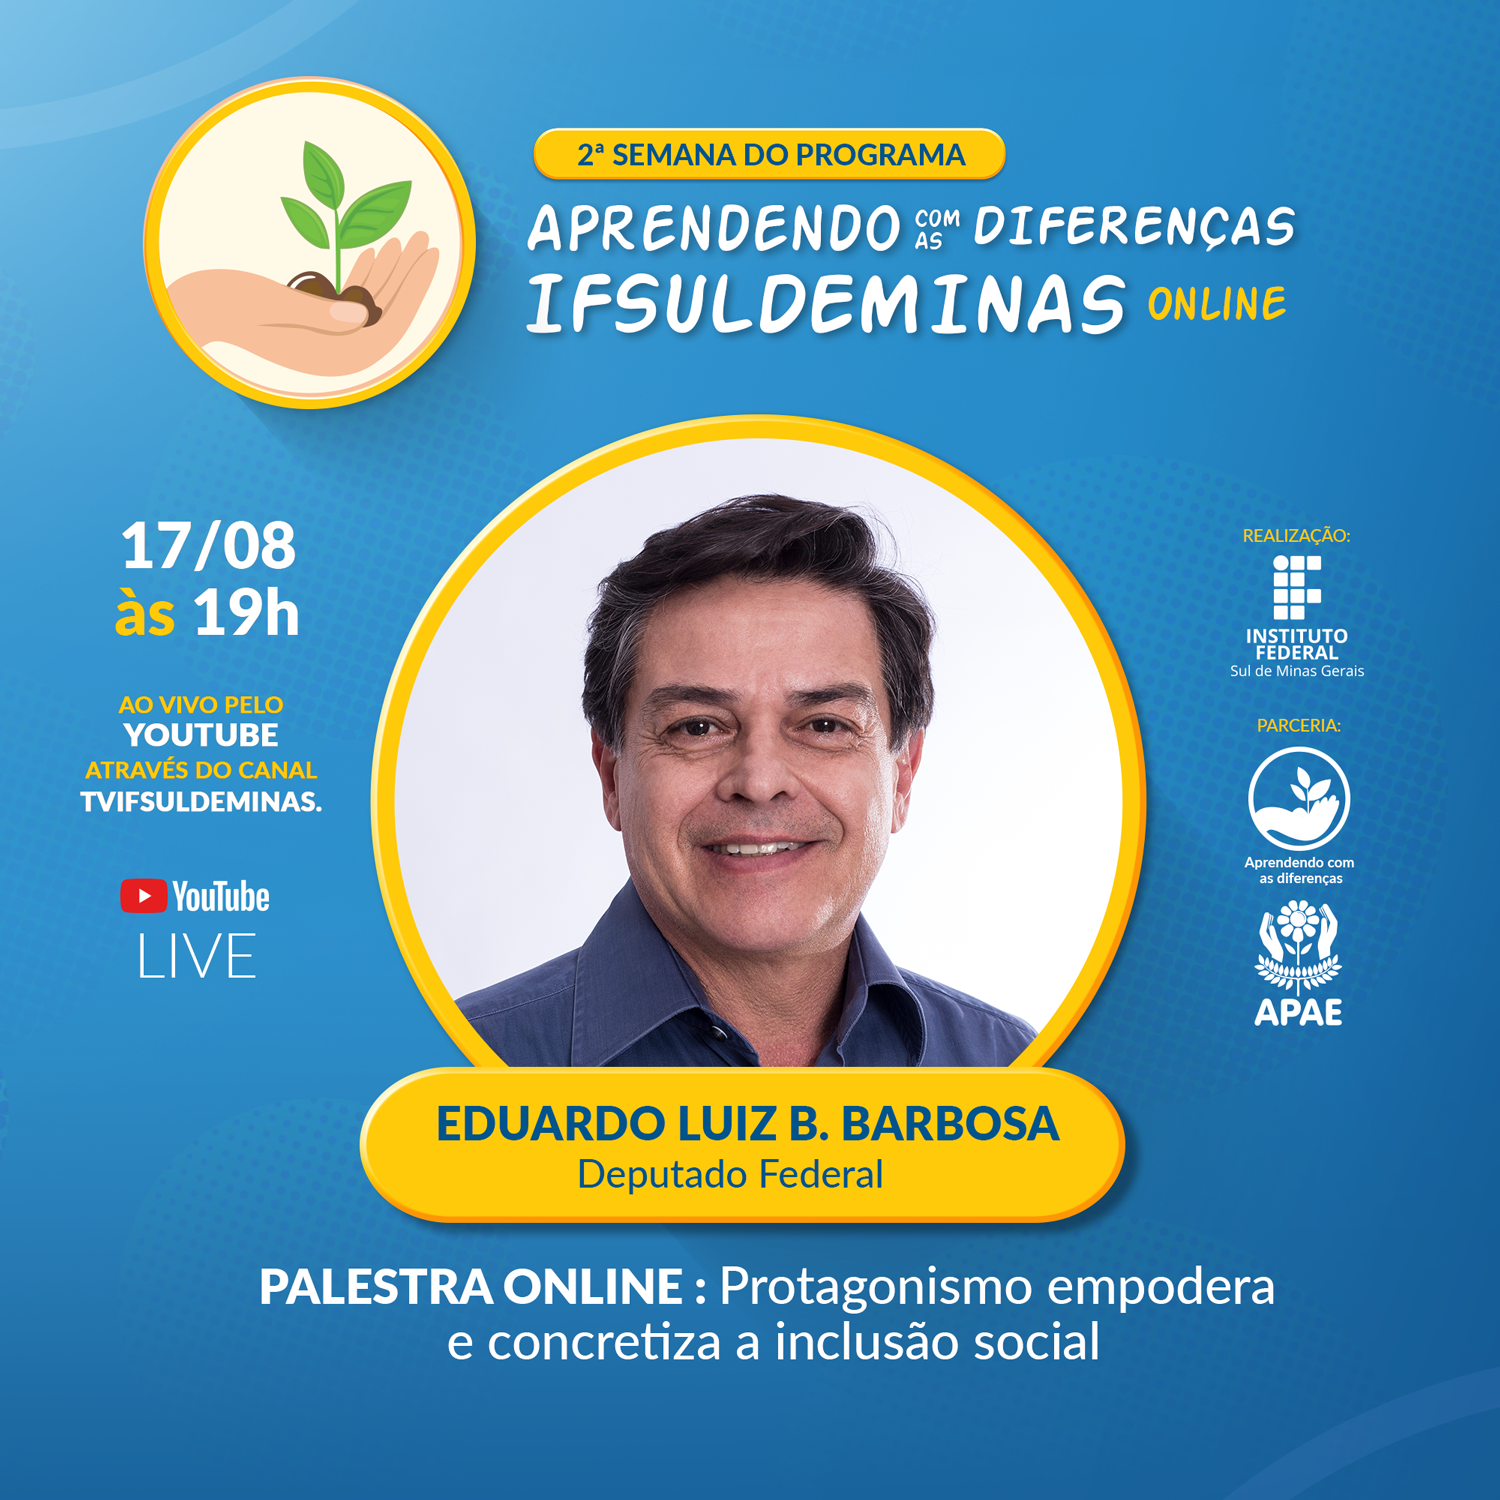 01 Post Data do Candidatos Eduardo